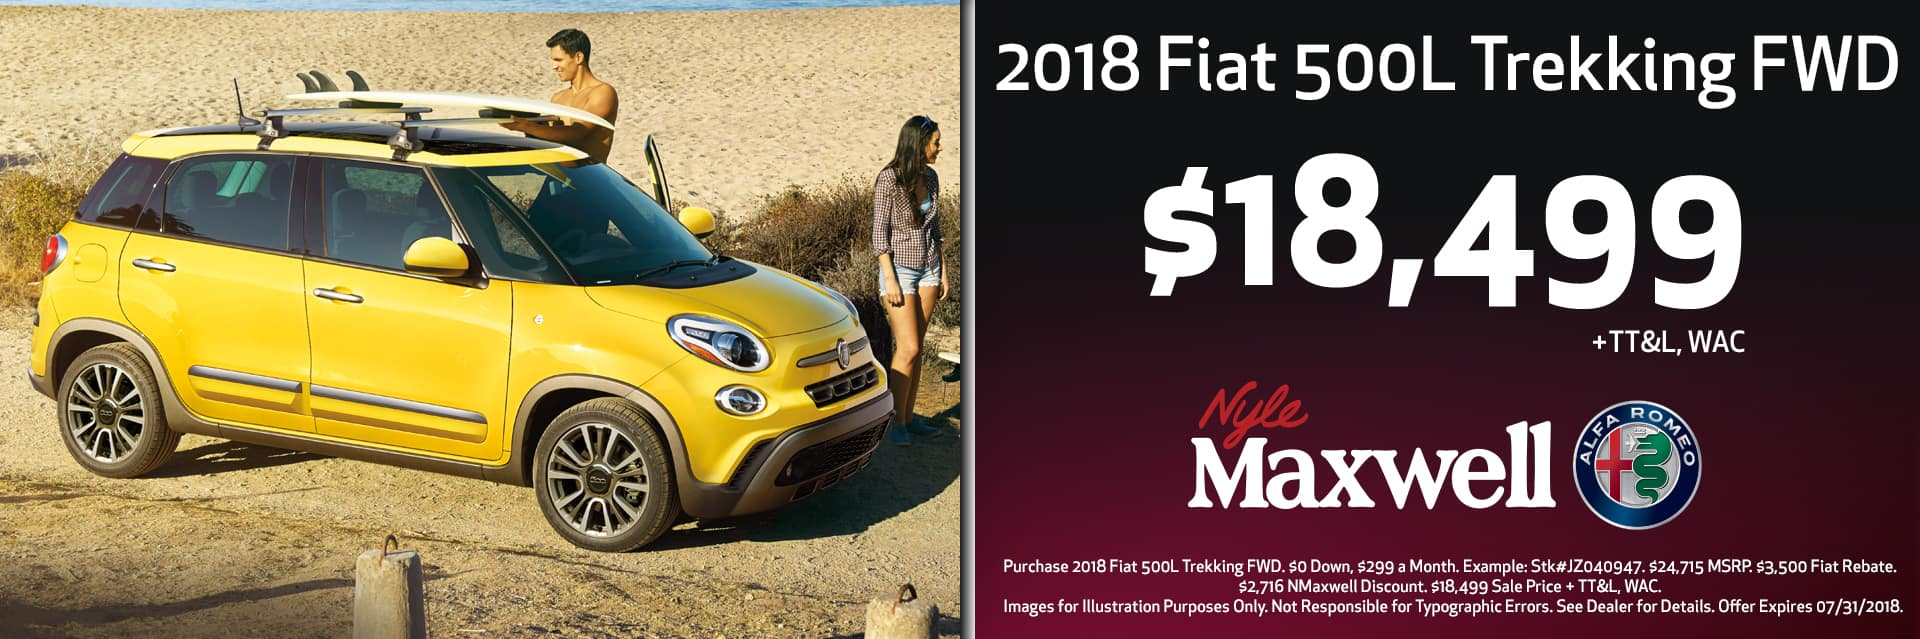 Nyle Maxwell Austin >> Nyle Maxwell FIAT | FIAT Dealer in Austin, TX